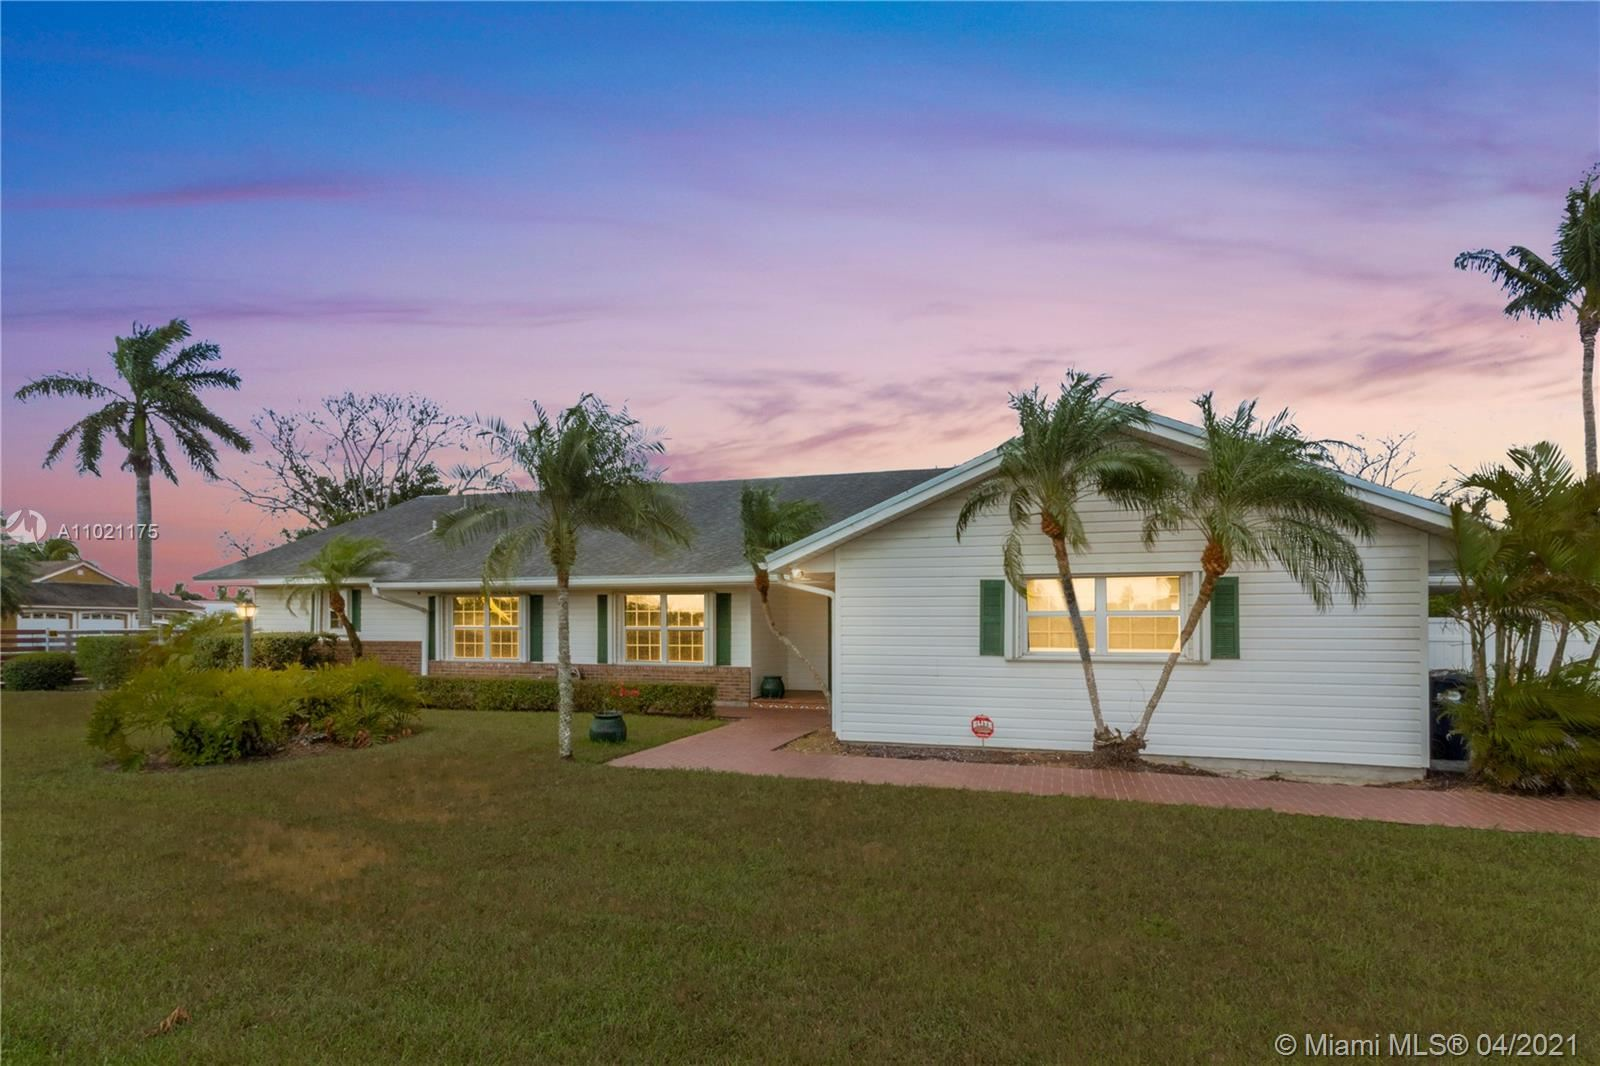 29490 SW 193rd Ave, Homestead, FL 33030 - #: A11021175